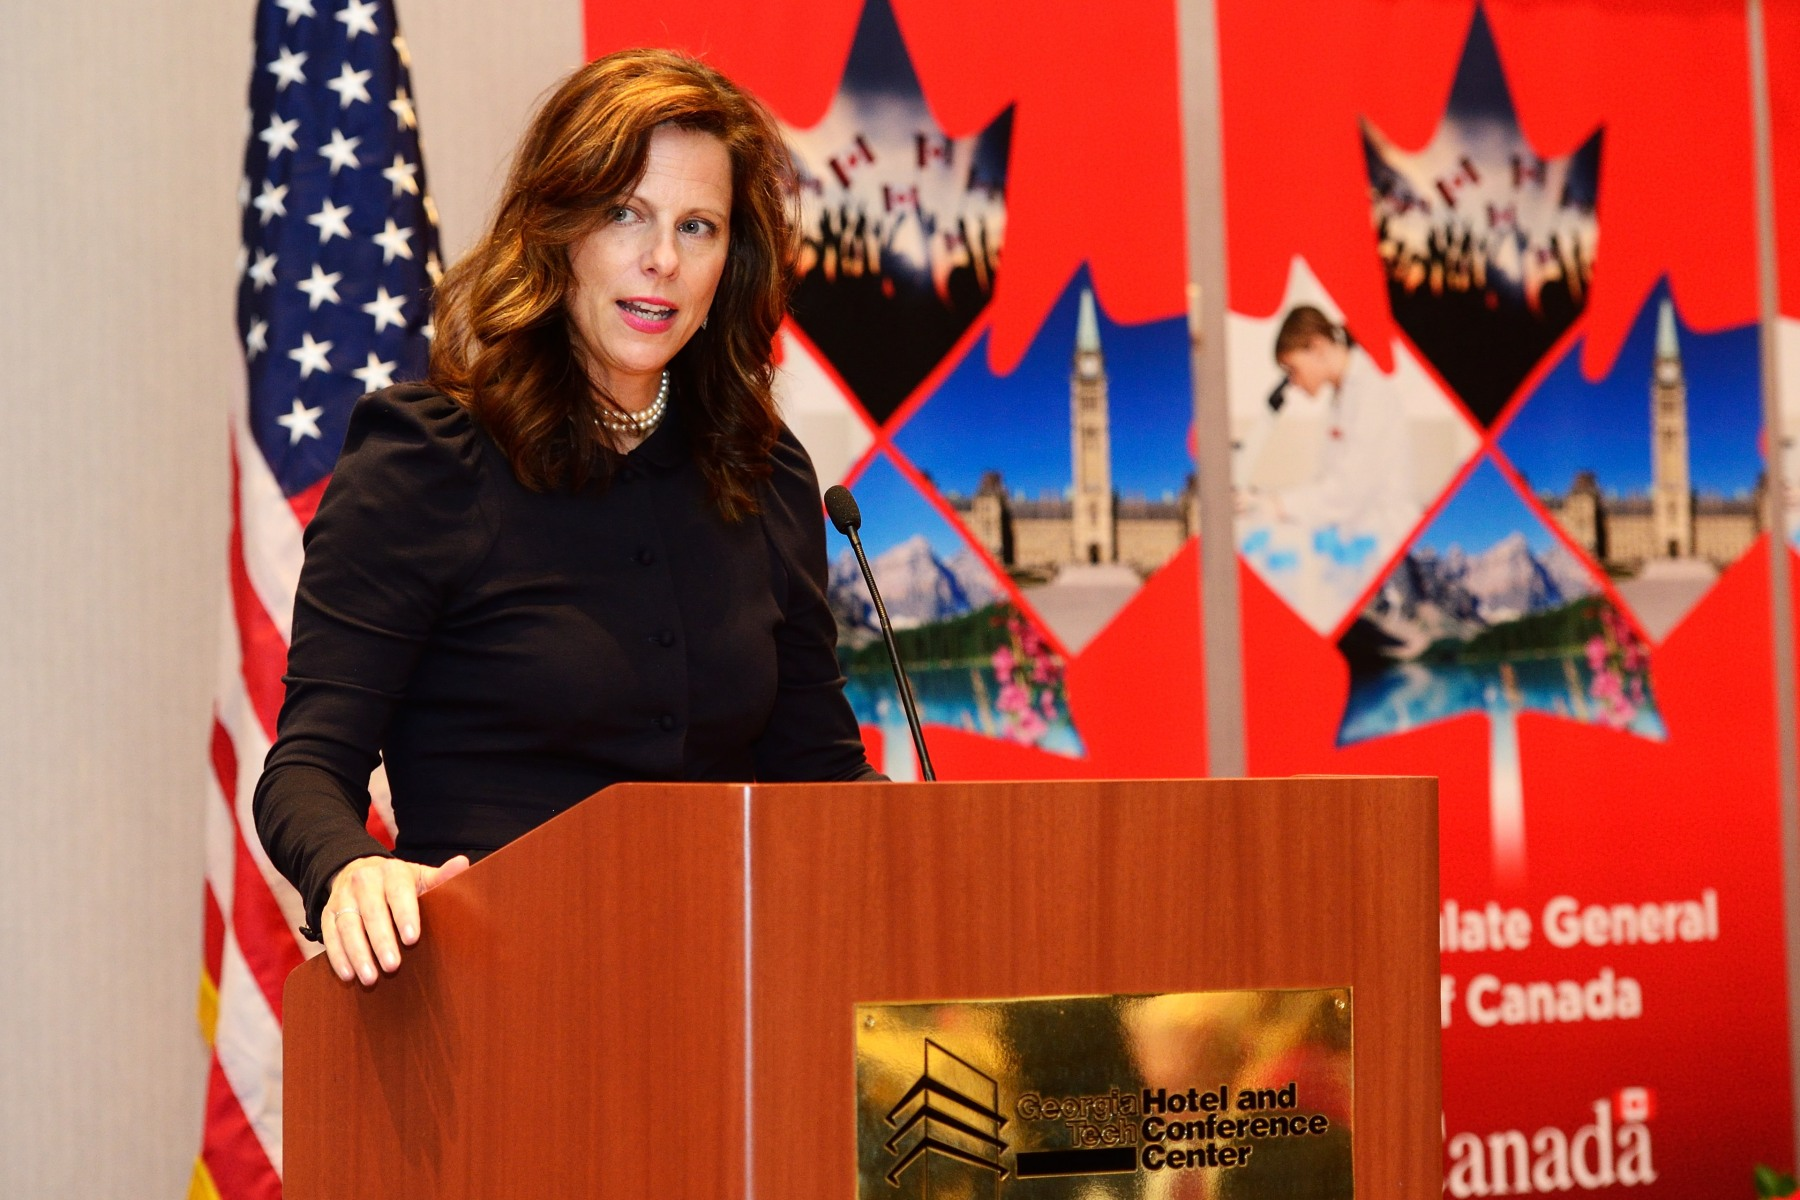 The Governor General was then invited to give the keynote address at a luncheon with business, technology and innovation leaders hosted by the World Council of Atlanta. He was introduced by the Consul General of Canada in Atlanta, Ms. Louise Blais.